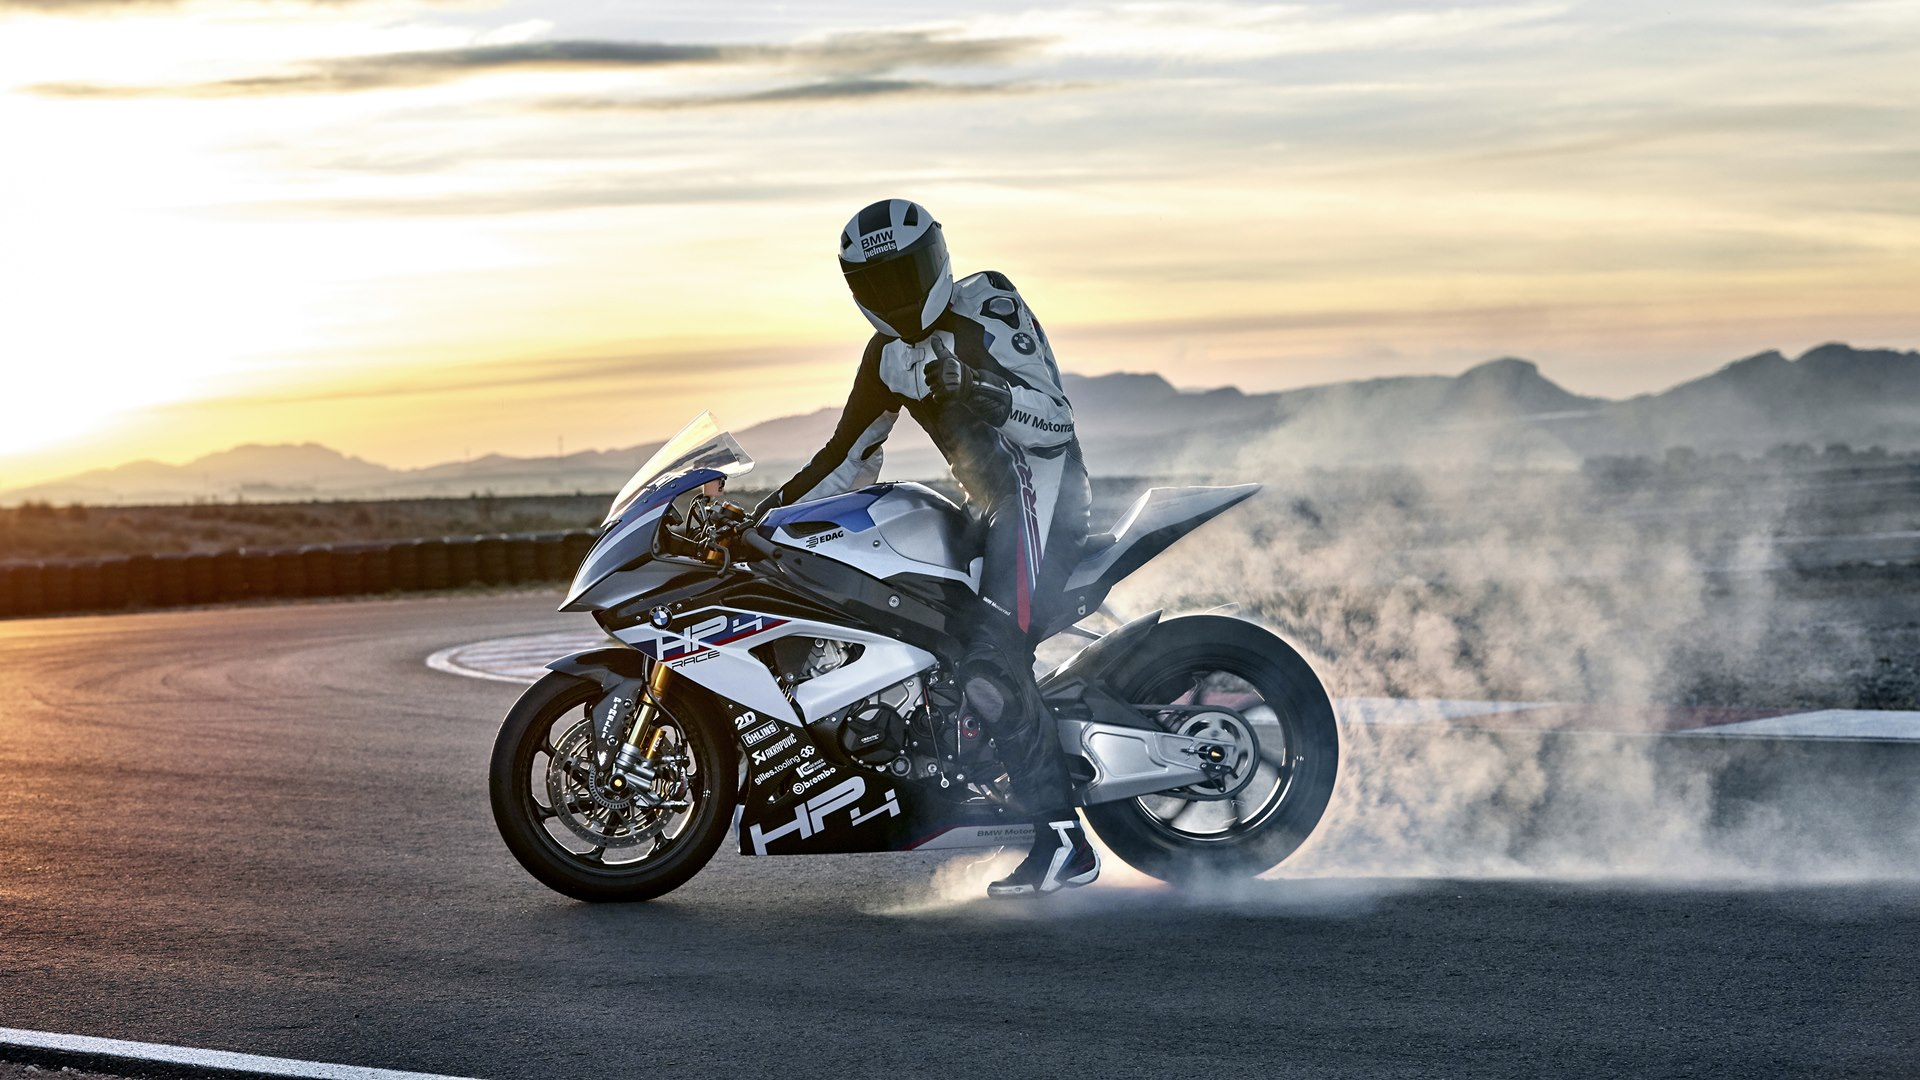 Bmw S1000rr Hp4 Bmw Bike Wallpapers: IAMABIKER - Everything Motorcycle